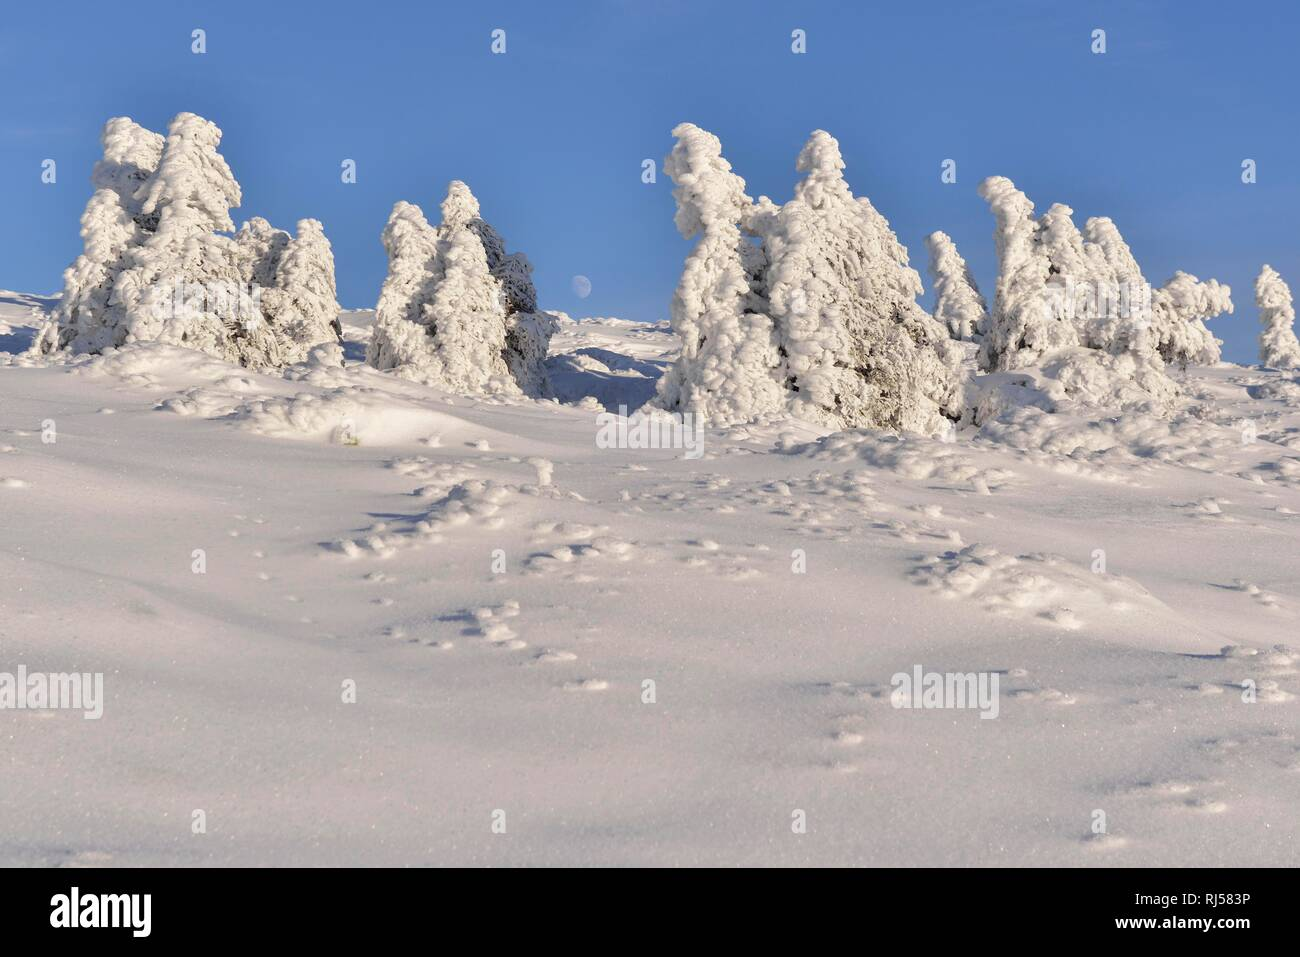 Snow-covered spruces on the Brocken, Harz National Park, Saxony-Anhalt, Germany - Stock Image